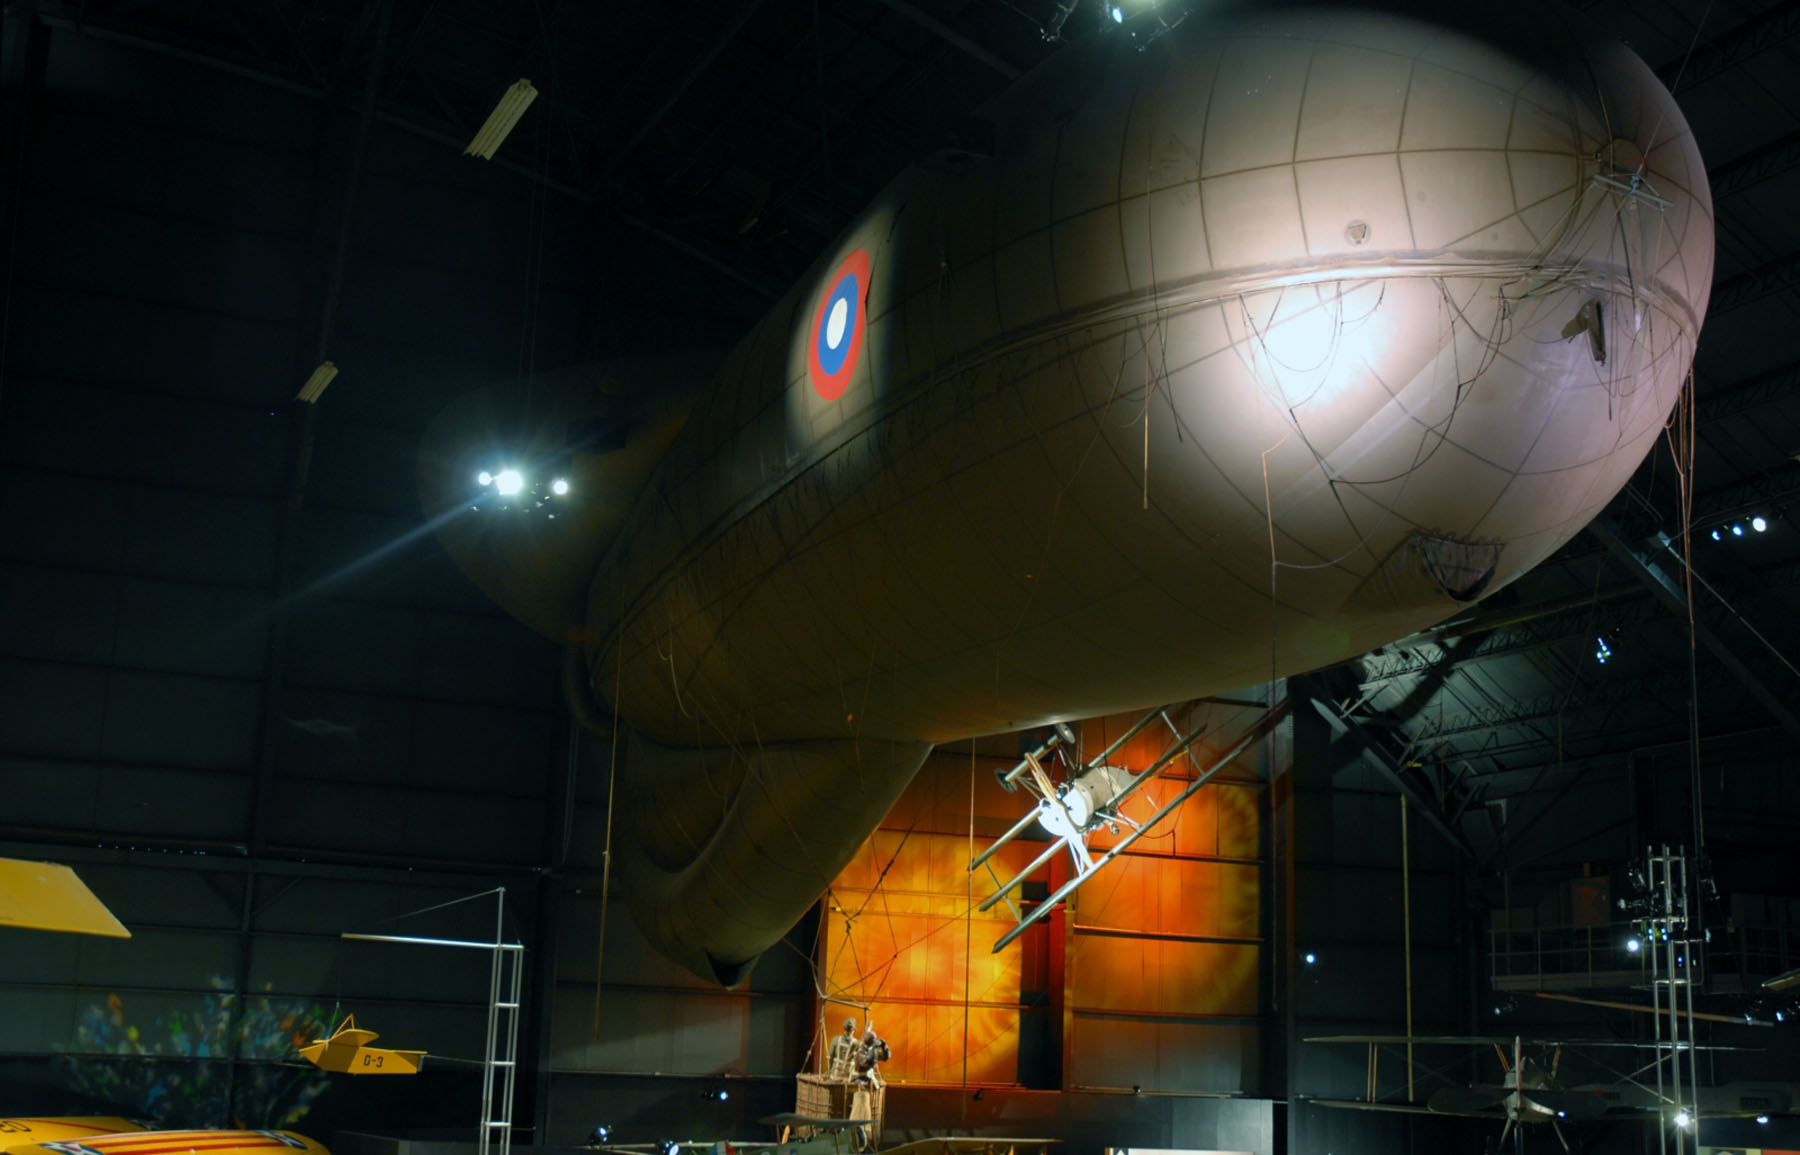 Air Force Height And Weight Chart: Caquot Type R Observation Balloon e National Museum of the US Air ,Chart